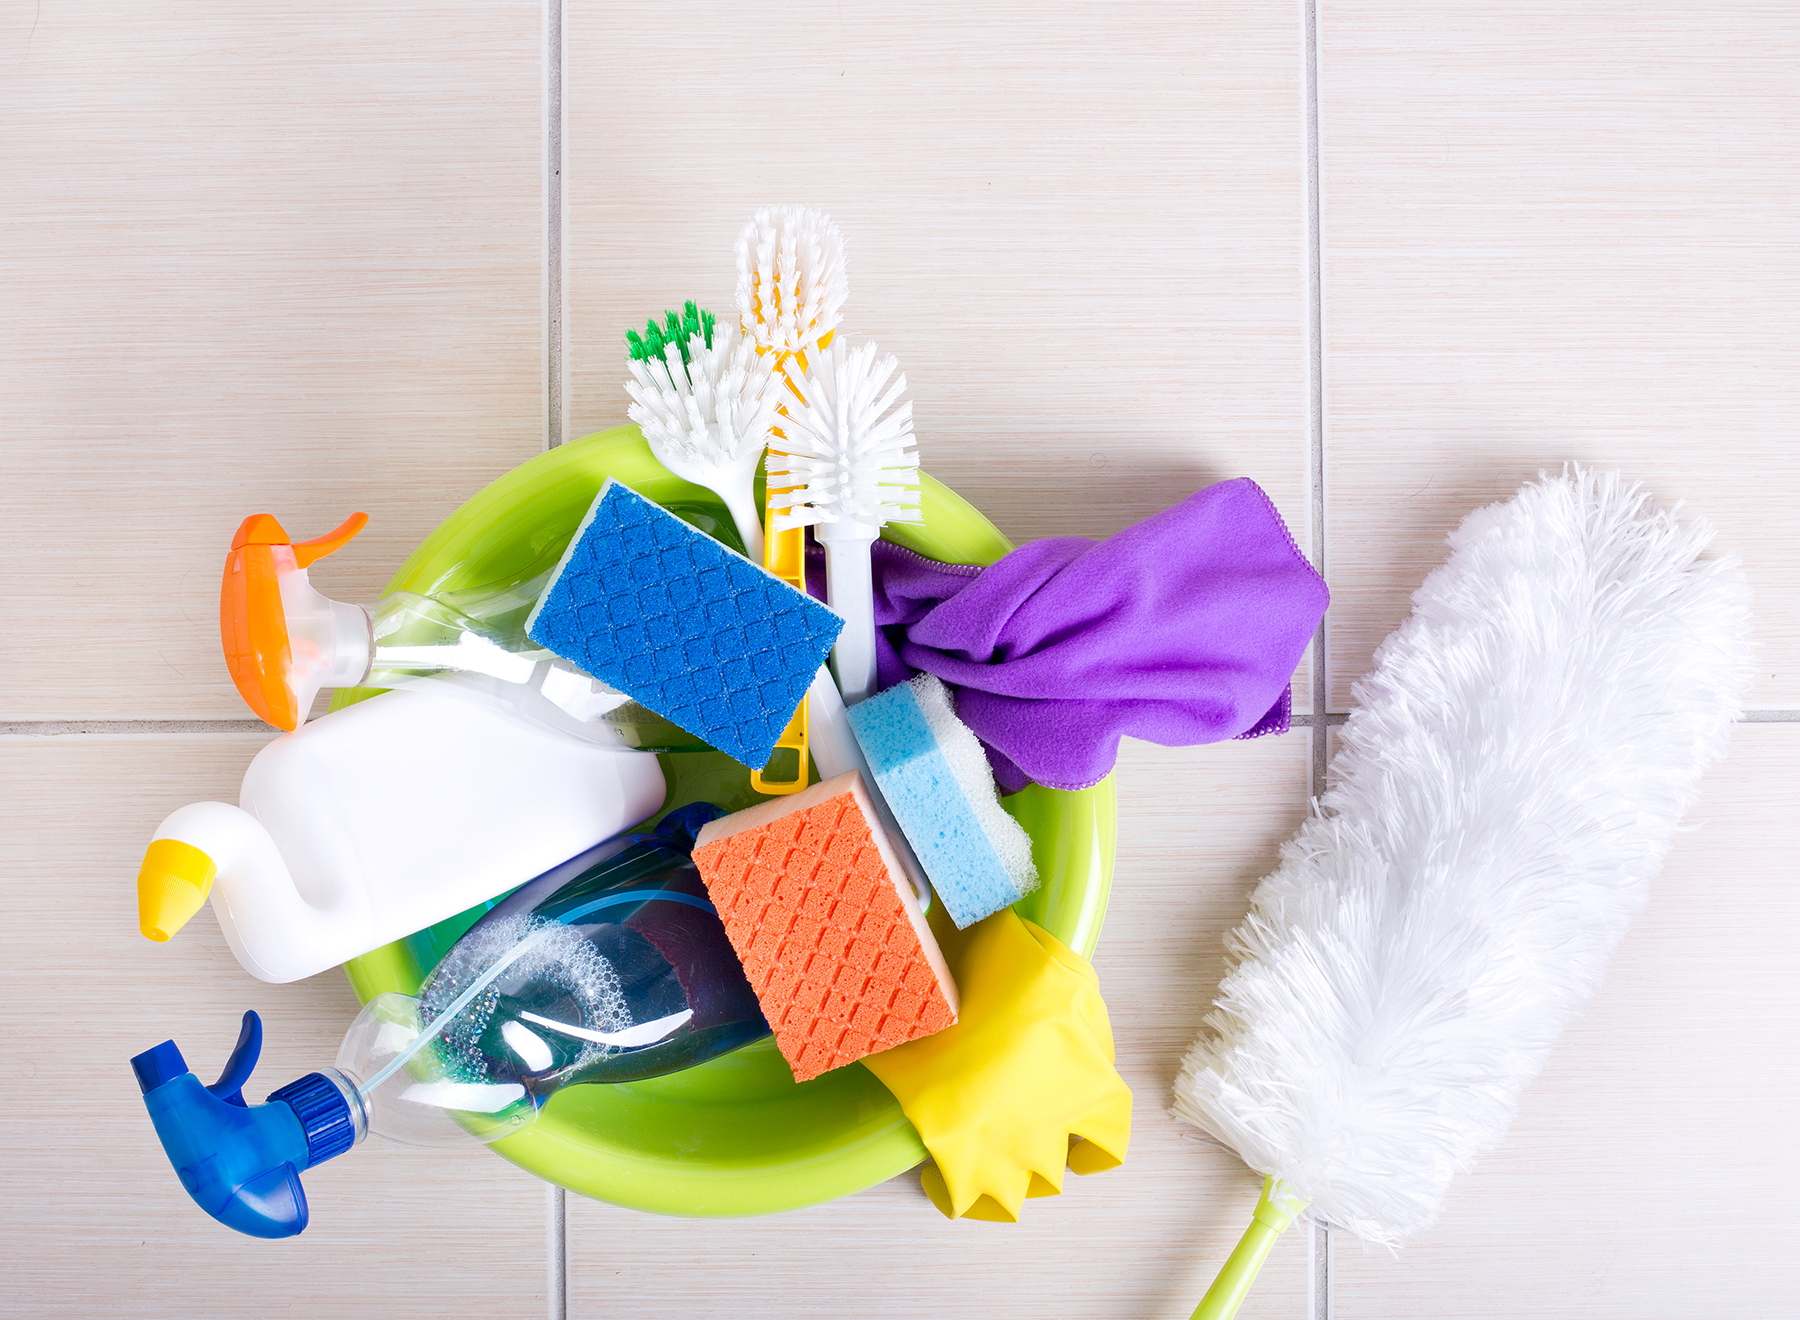 Array of cleaning supplies